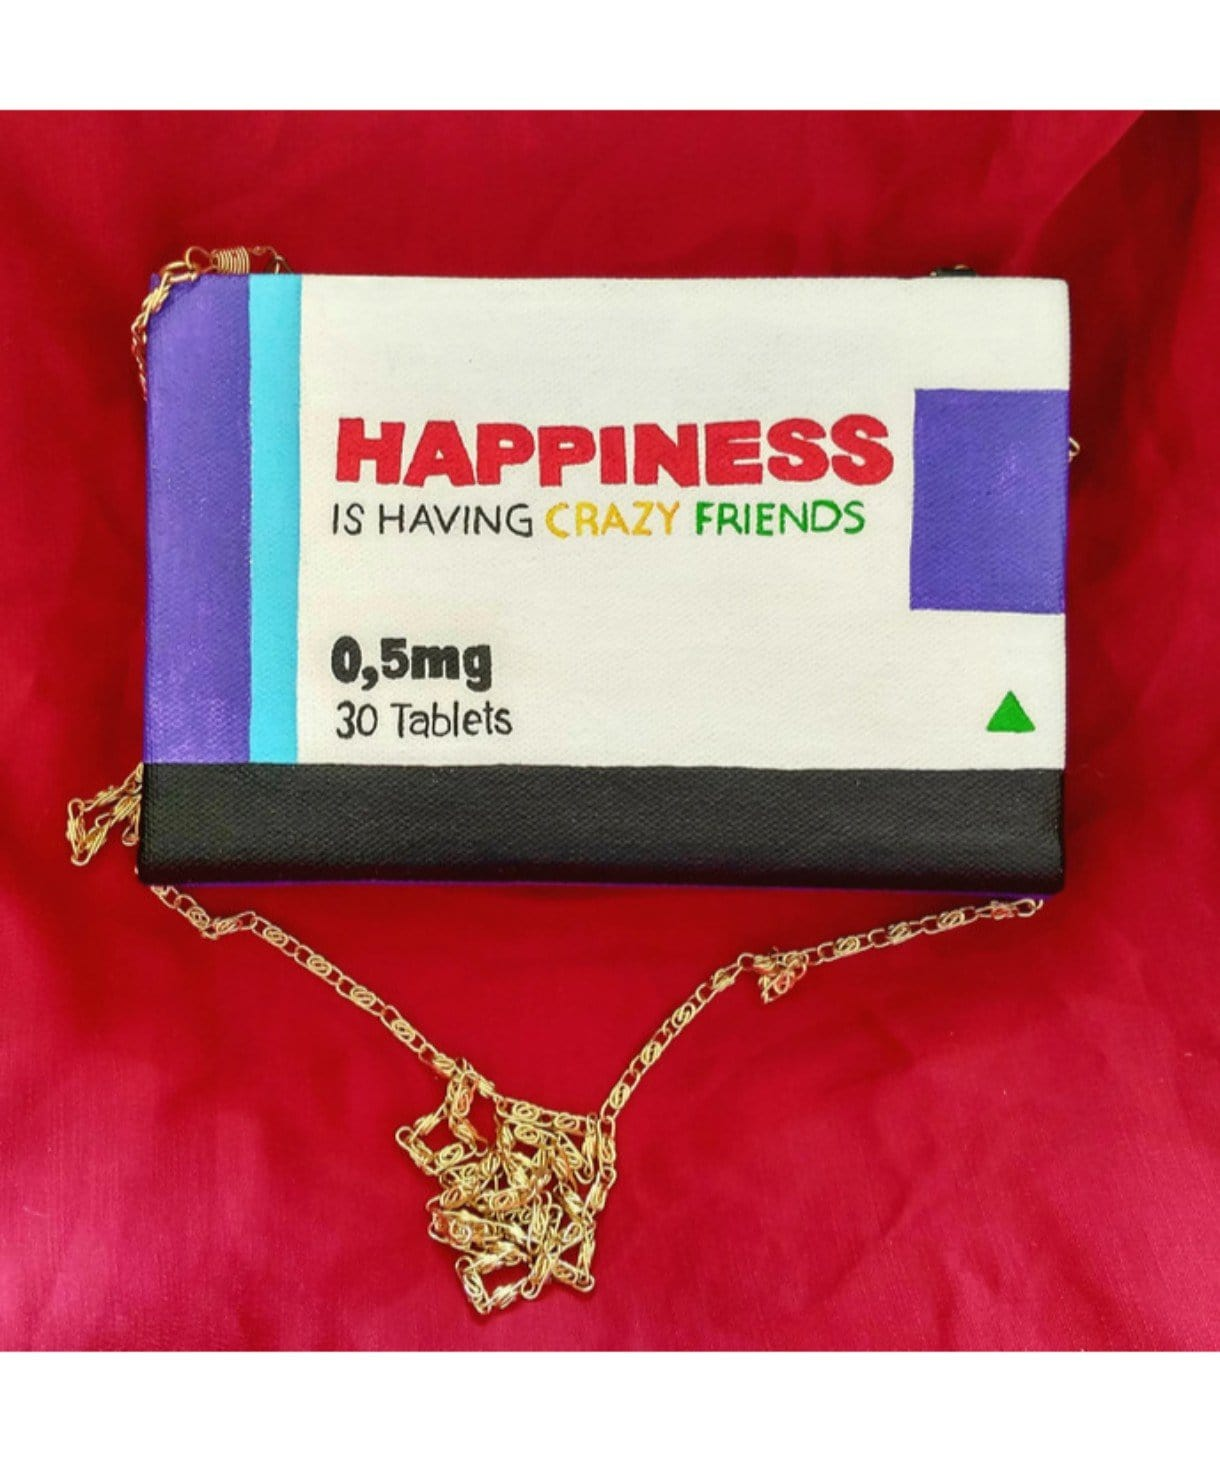 Happiness Dosage Box Clutch - Uptownie